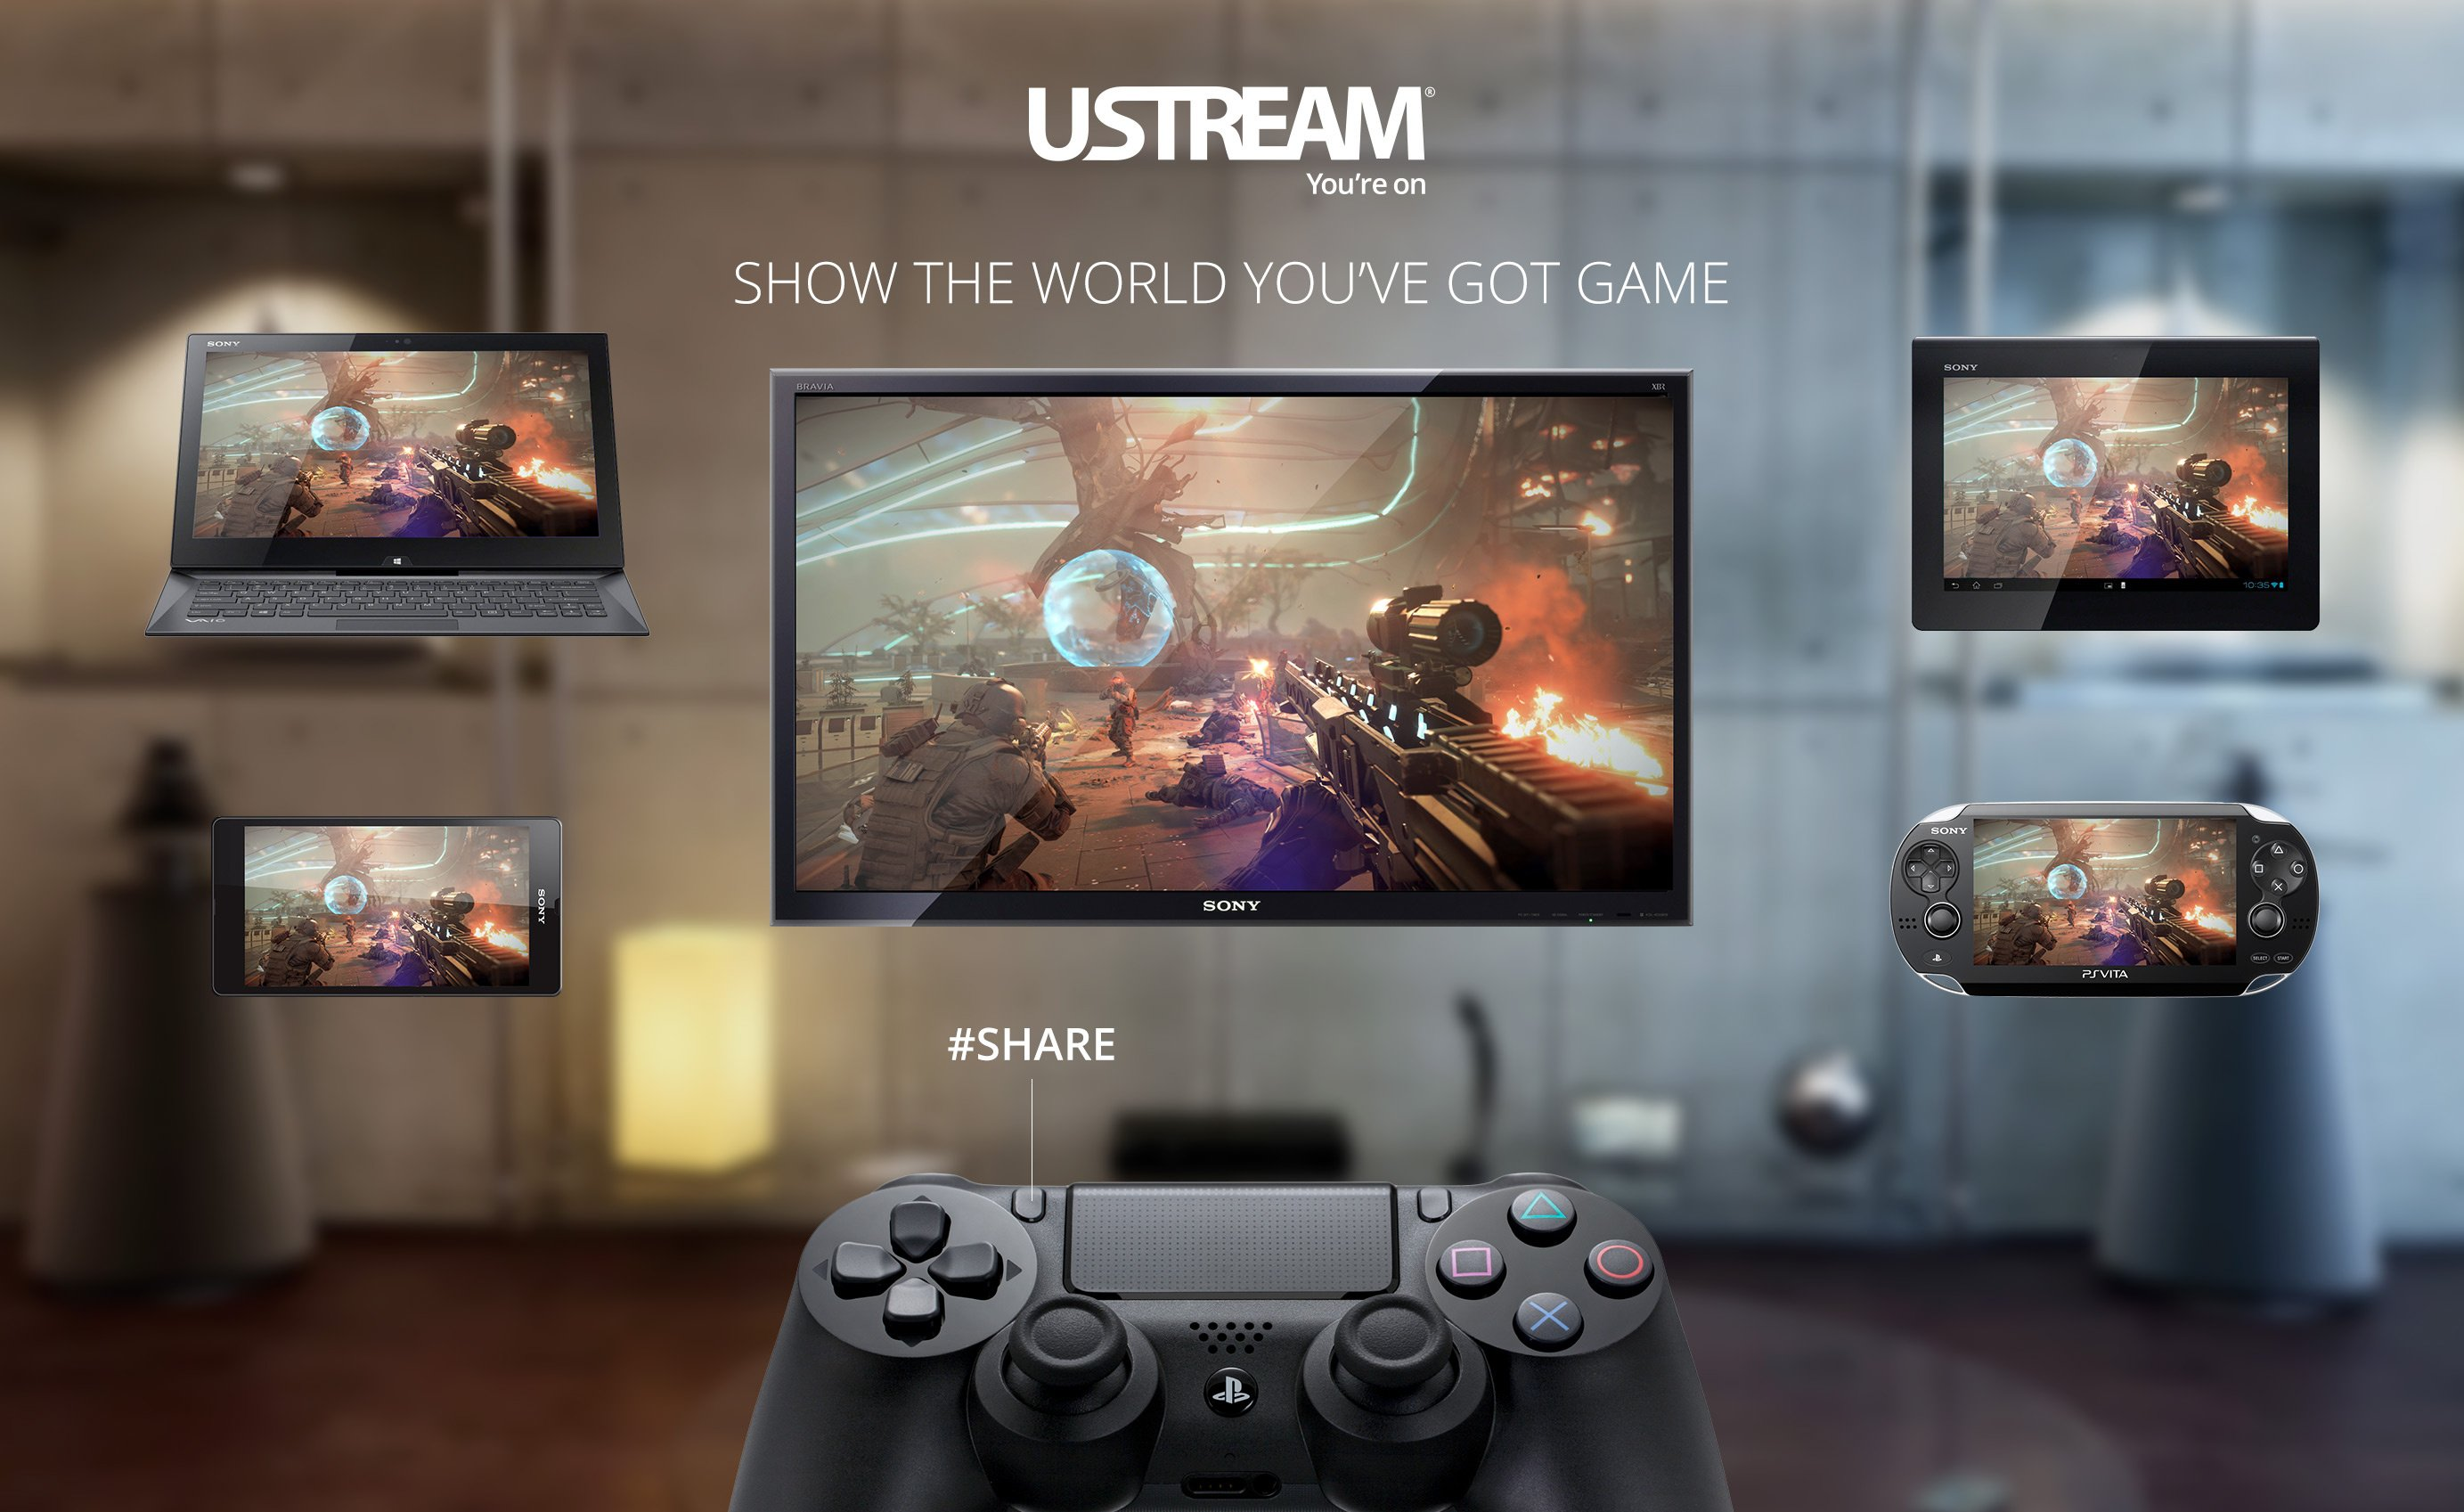 say goodbye to ustream support on ps4 this august